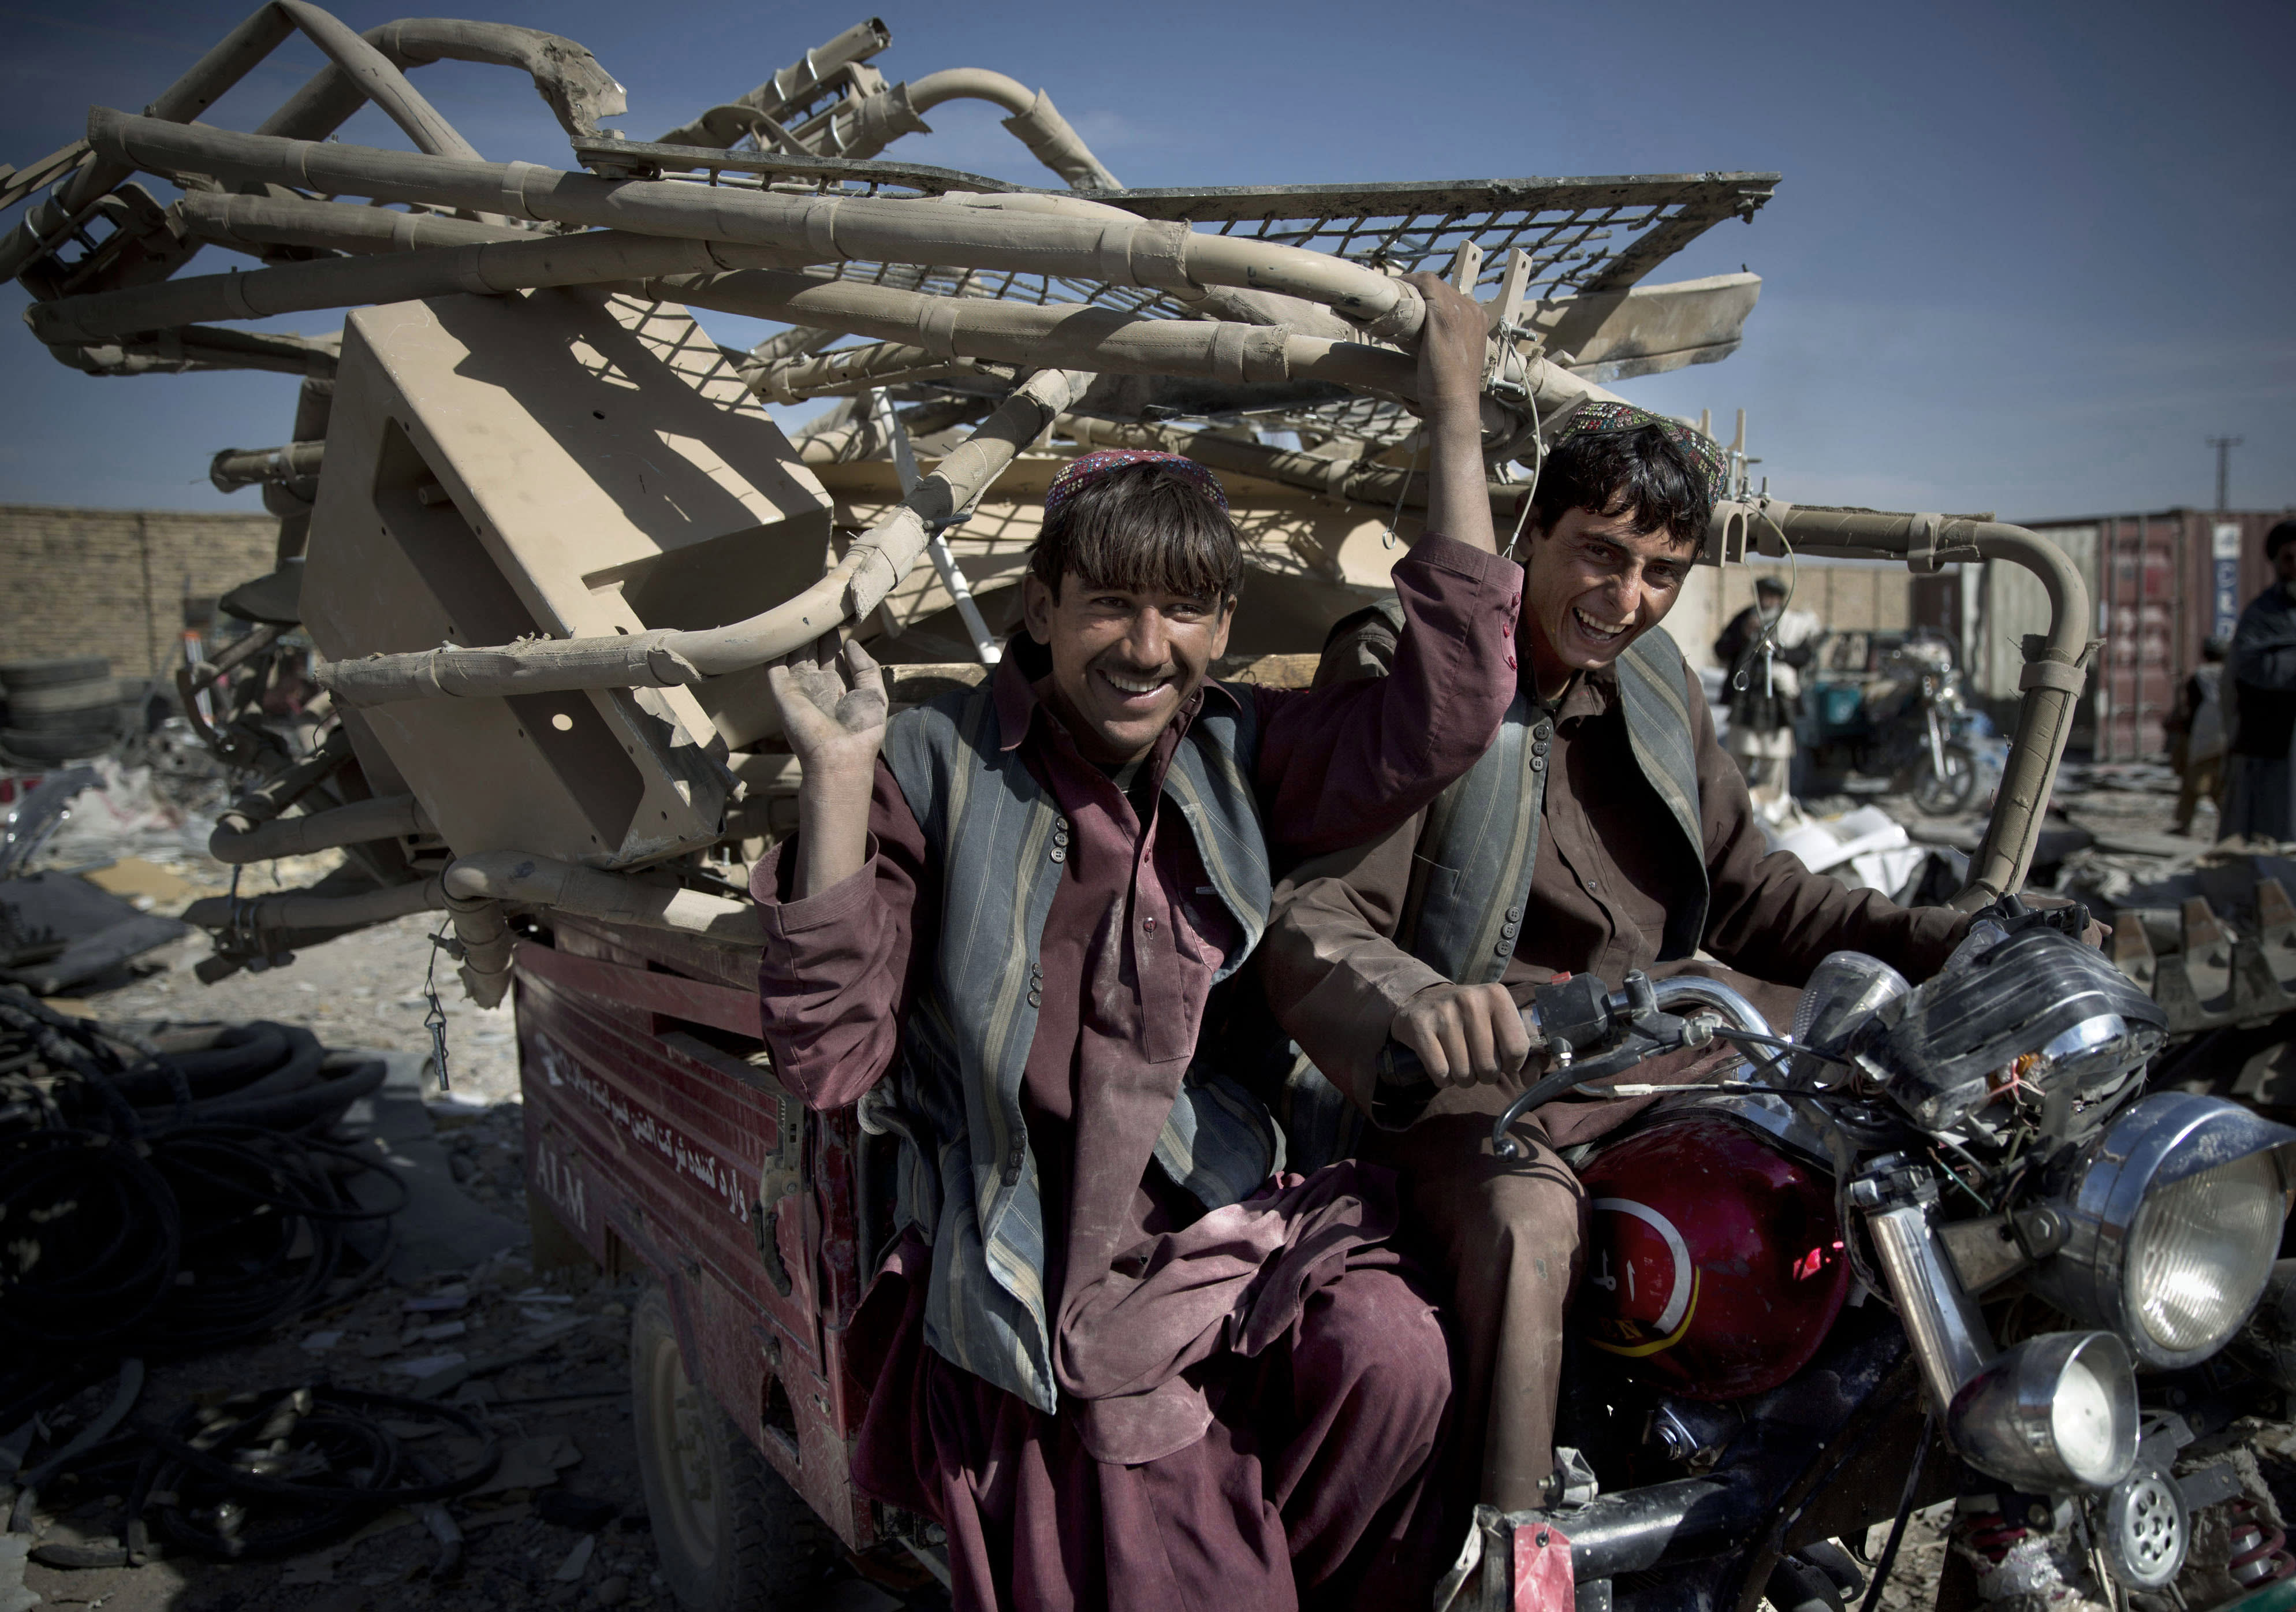 This Saturday, Nov. 2, 2013 photo shows Afghan scrap collectors transport a load of destroyed U.S. equipment from the departing military in Kandahar, southern Afghanistan. As the final withdrawal of U.S. and NATO troops approaches at the end of 2014, the U.S. military is getting rid of equipment that is either too expensive to ship back to the United States or if it is sold as working equipment could be used by insurgents. (AP Photo/Anja Niedringhaus)